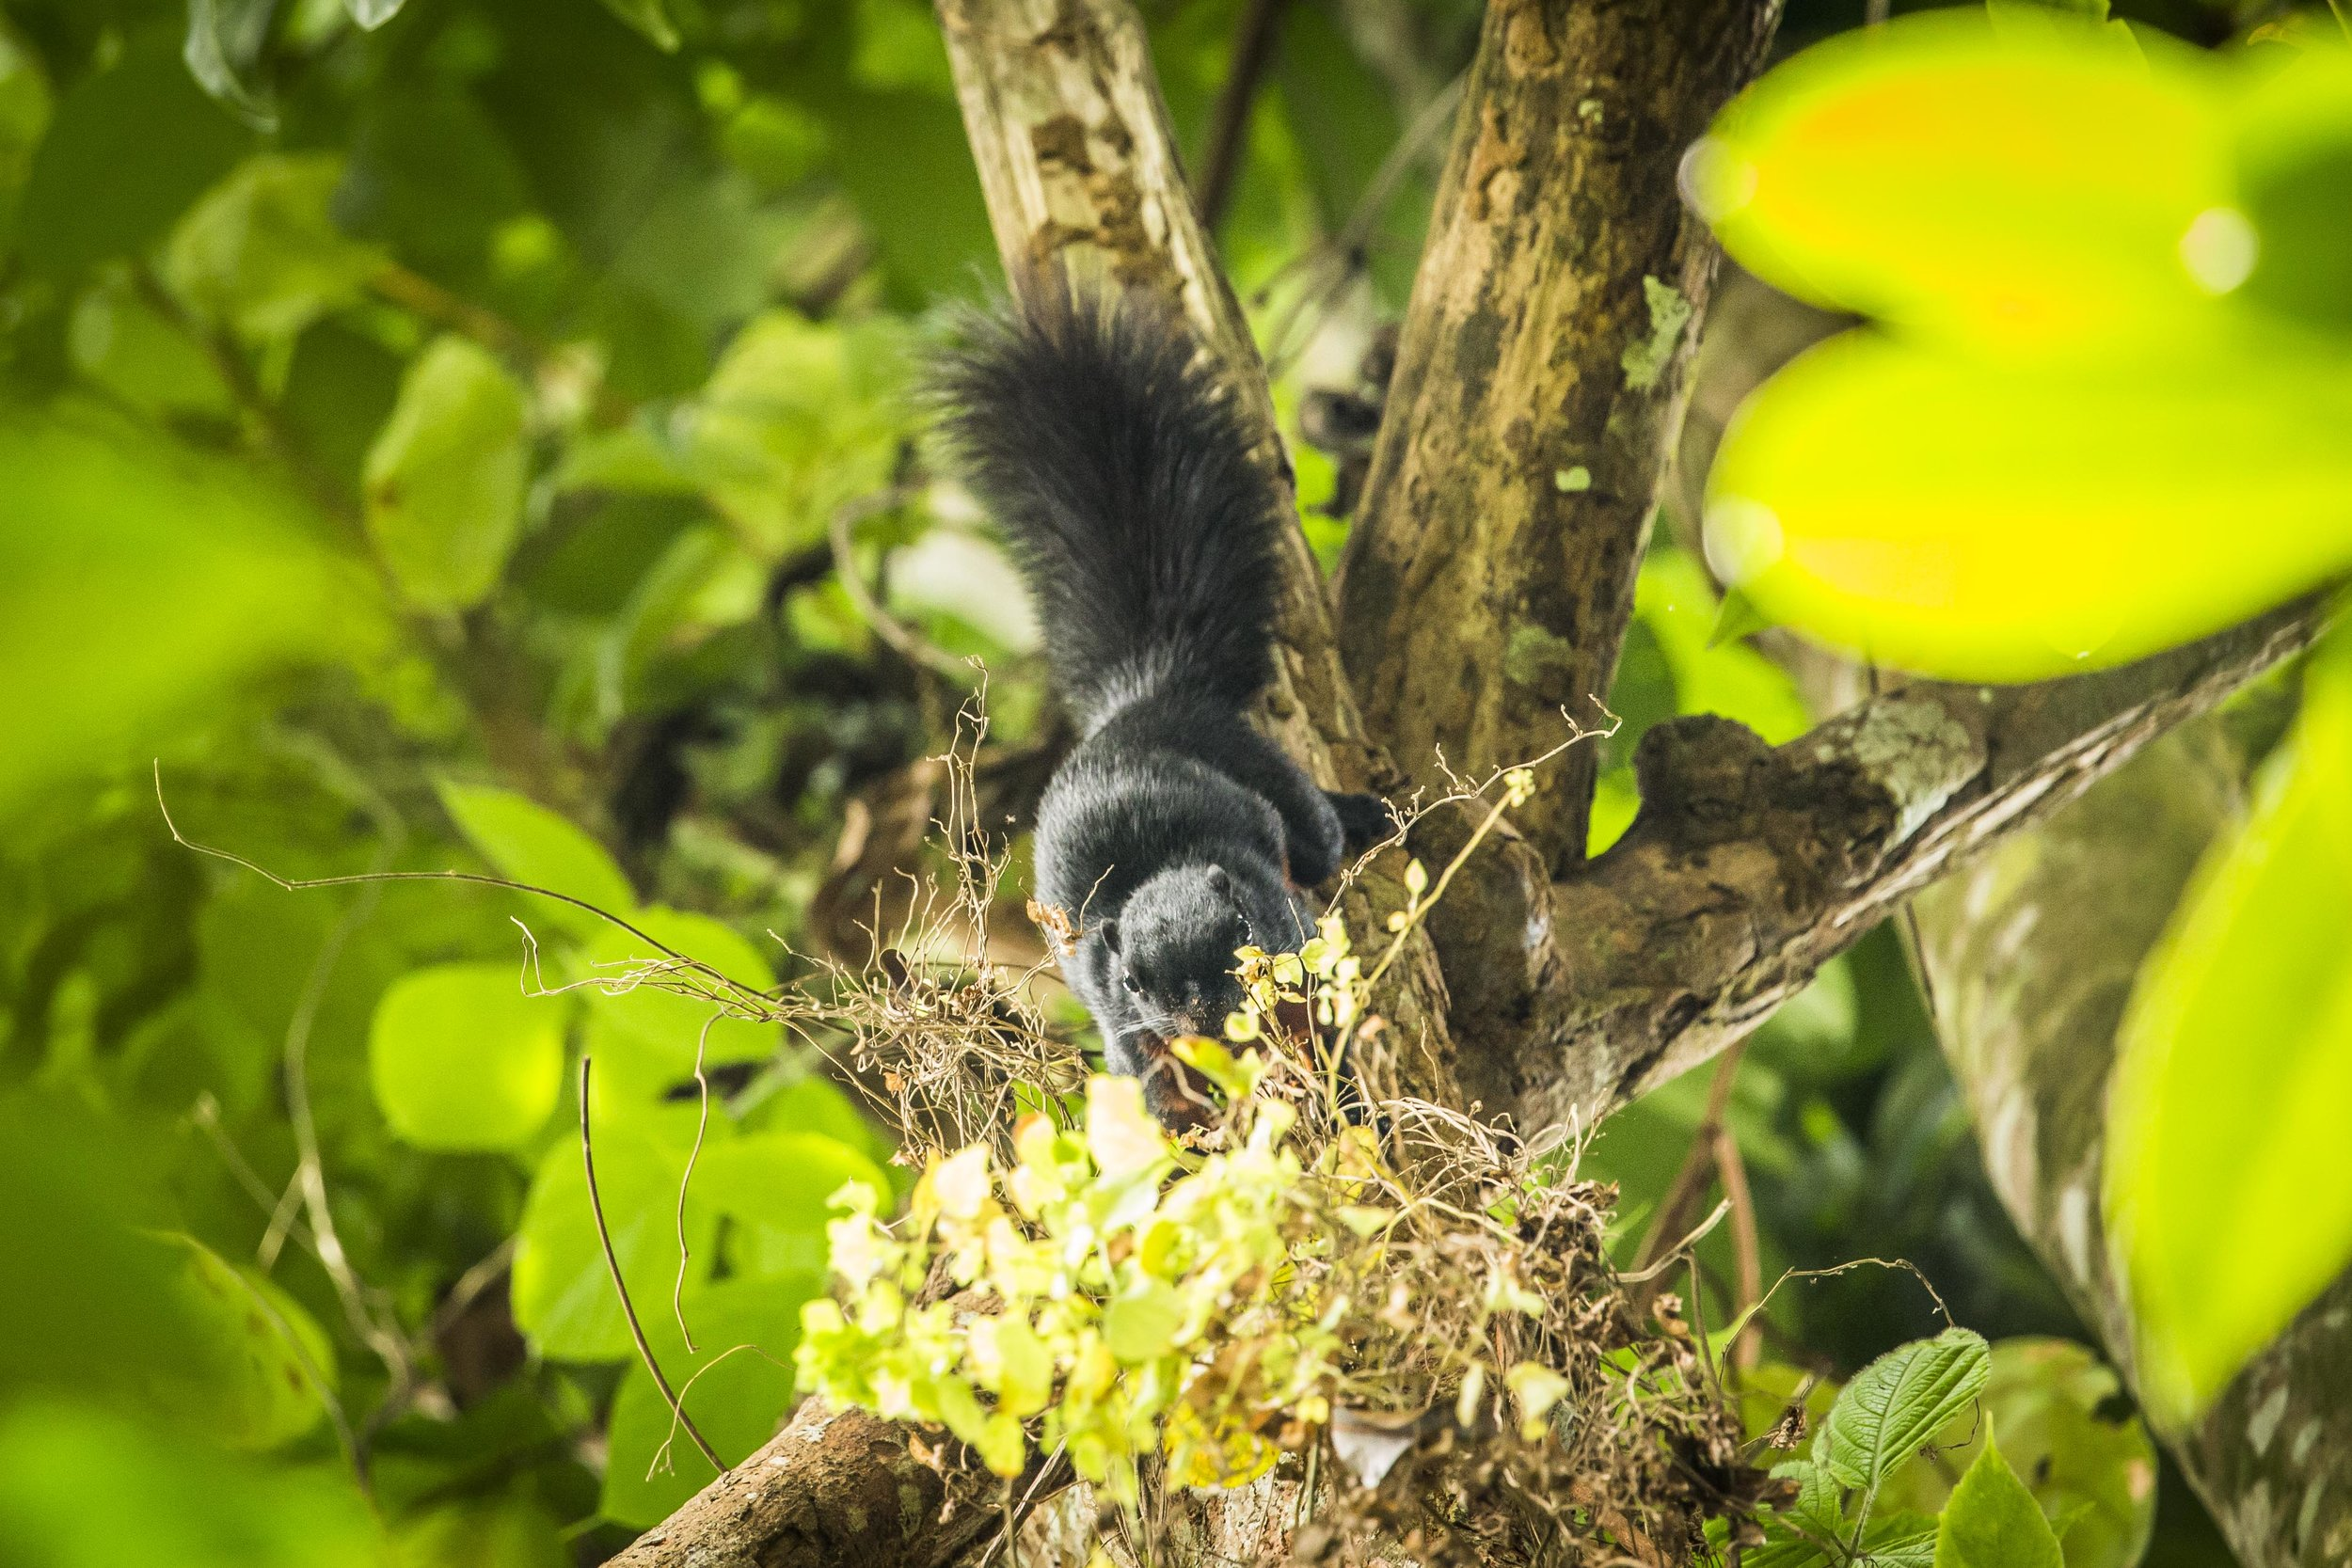 prevost's Squirrel (Callosciurus prevostii) - Although this squirrel might appear to look just like a black squirrel, the species has actually a very bright coloration: the underpart is a rusty red color surrounded by a band of white fur, while the back is charcoal black. This is the reason why they are also known as the Asian tri-colored squirrel. When they want to communicate with their own kind they emit a piercing whistle sound, and when they want to be left alone they do the typical squirrel trill. We were lucky to spot this squirrel for more than a few seconds during one of the hikes outside Ketambe, as they are skittish and you will mostly hear rather than see them up in the canopy.